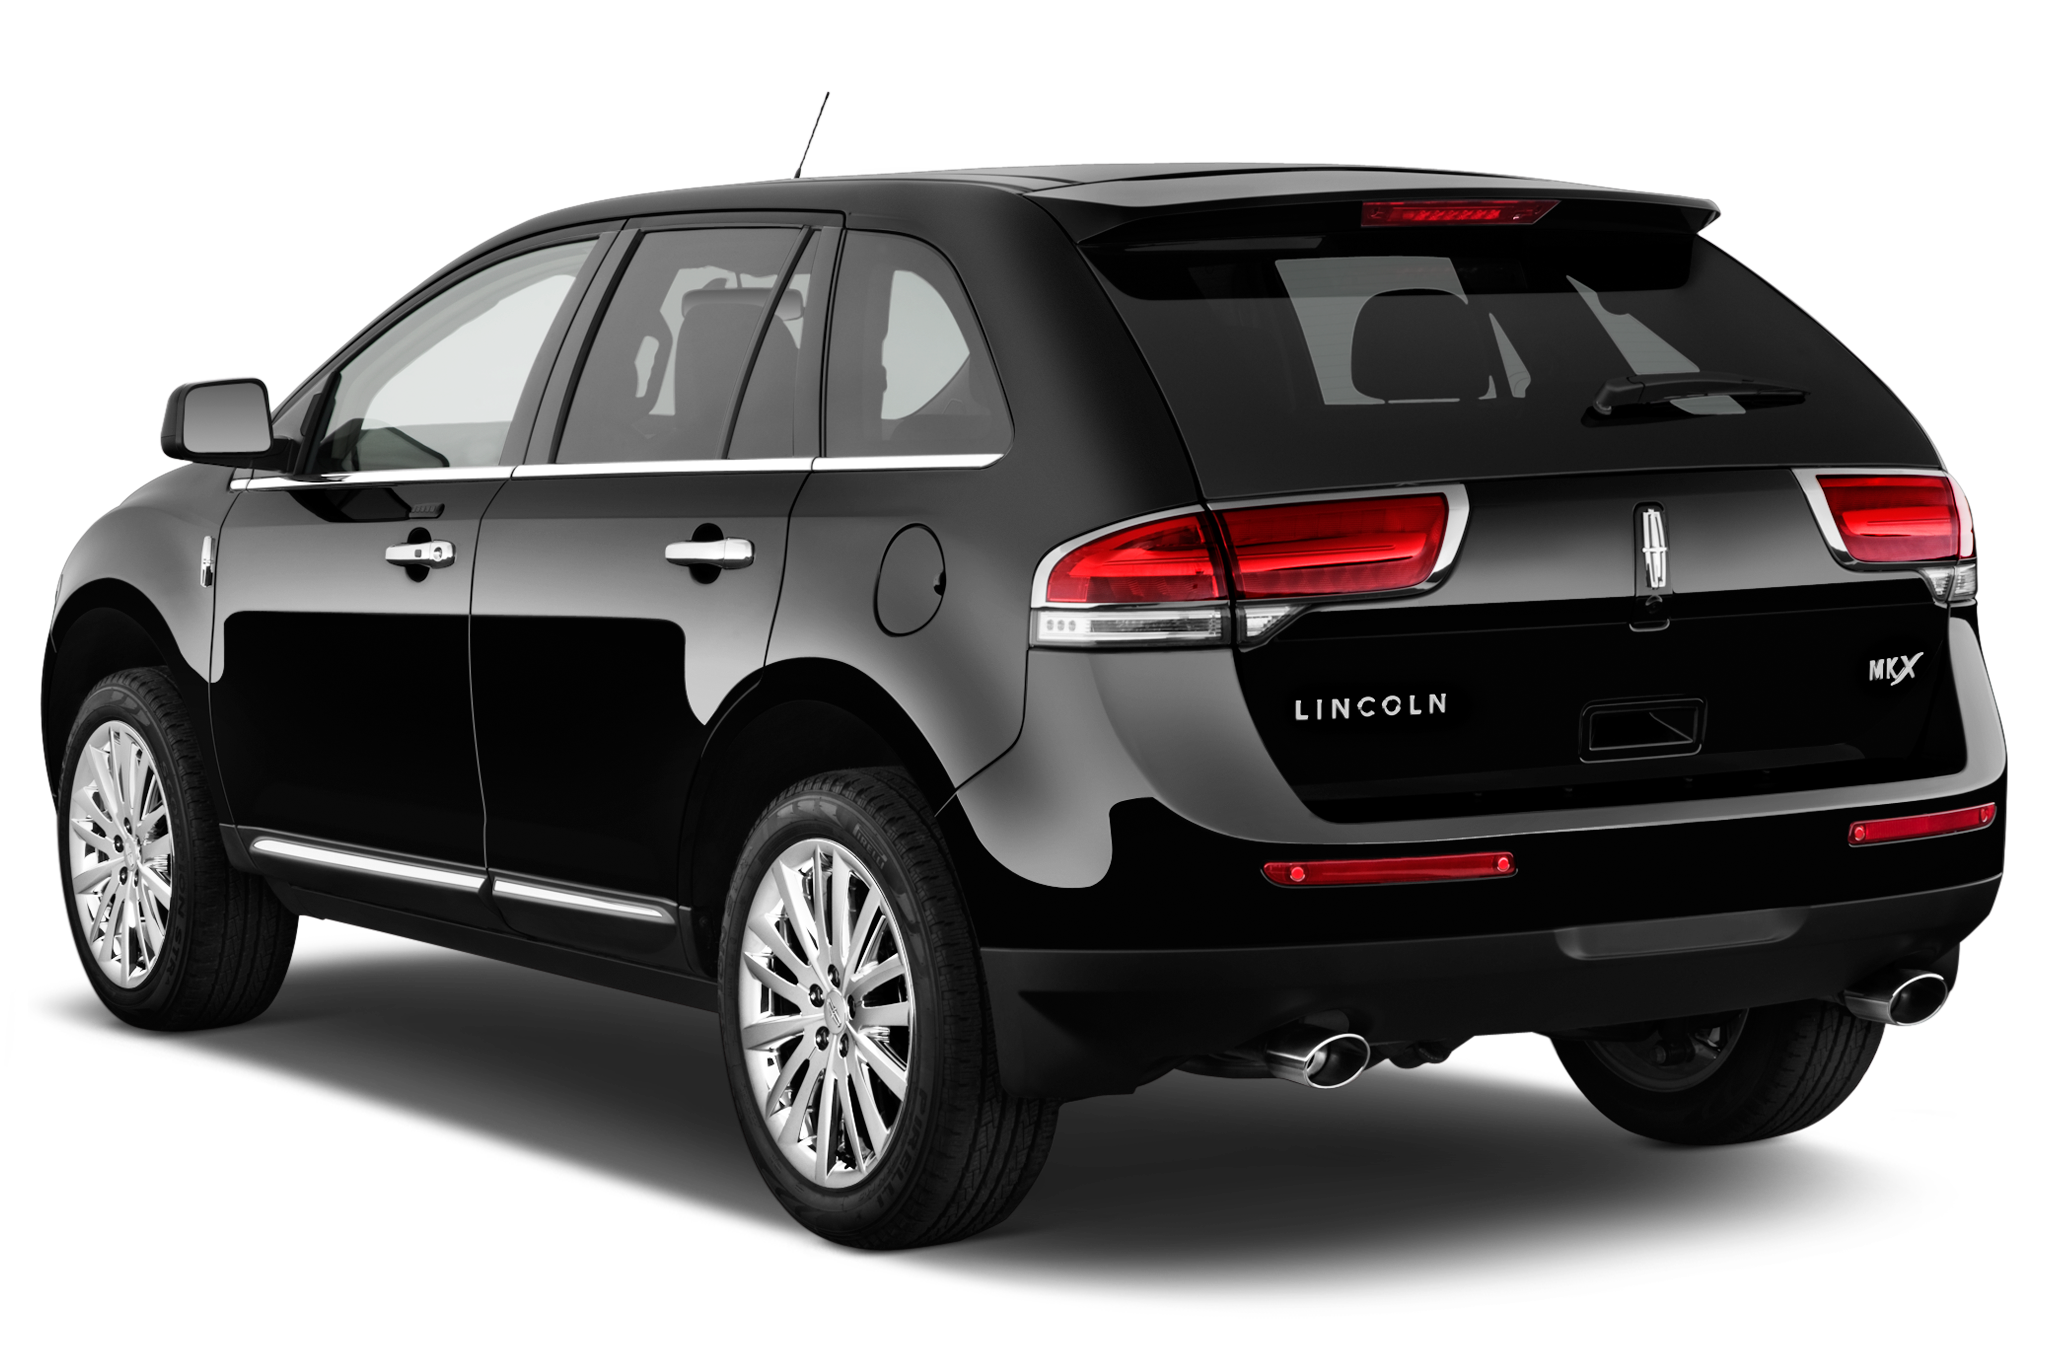 owned used we mkx lincolns lincoln featured have certified sale pre htm suv vehicles clean for